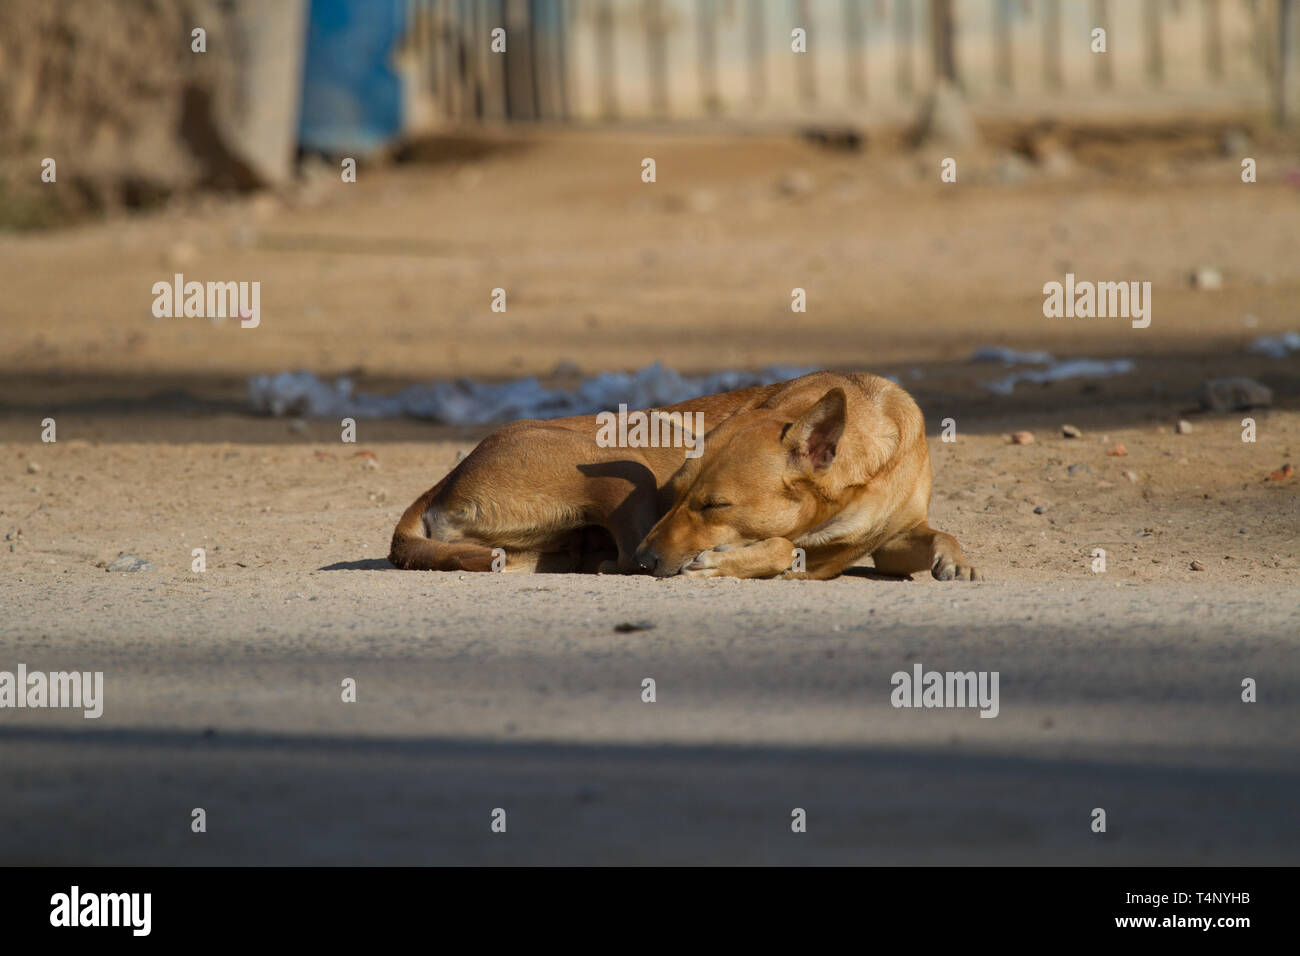 Sleeping Dog in street. Sri Lanka. - Stock Image